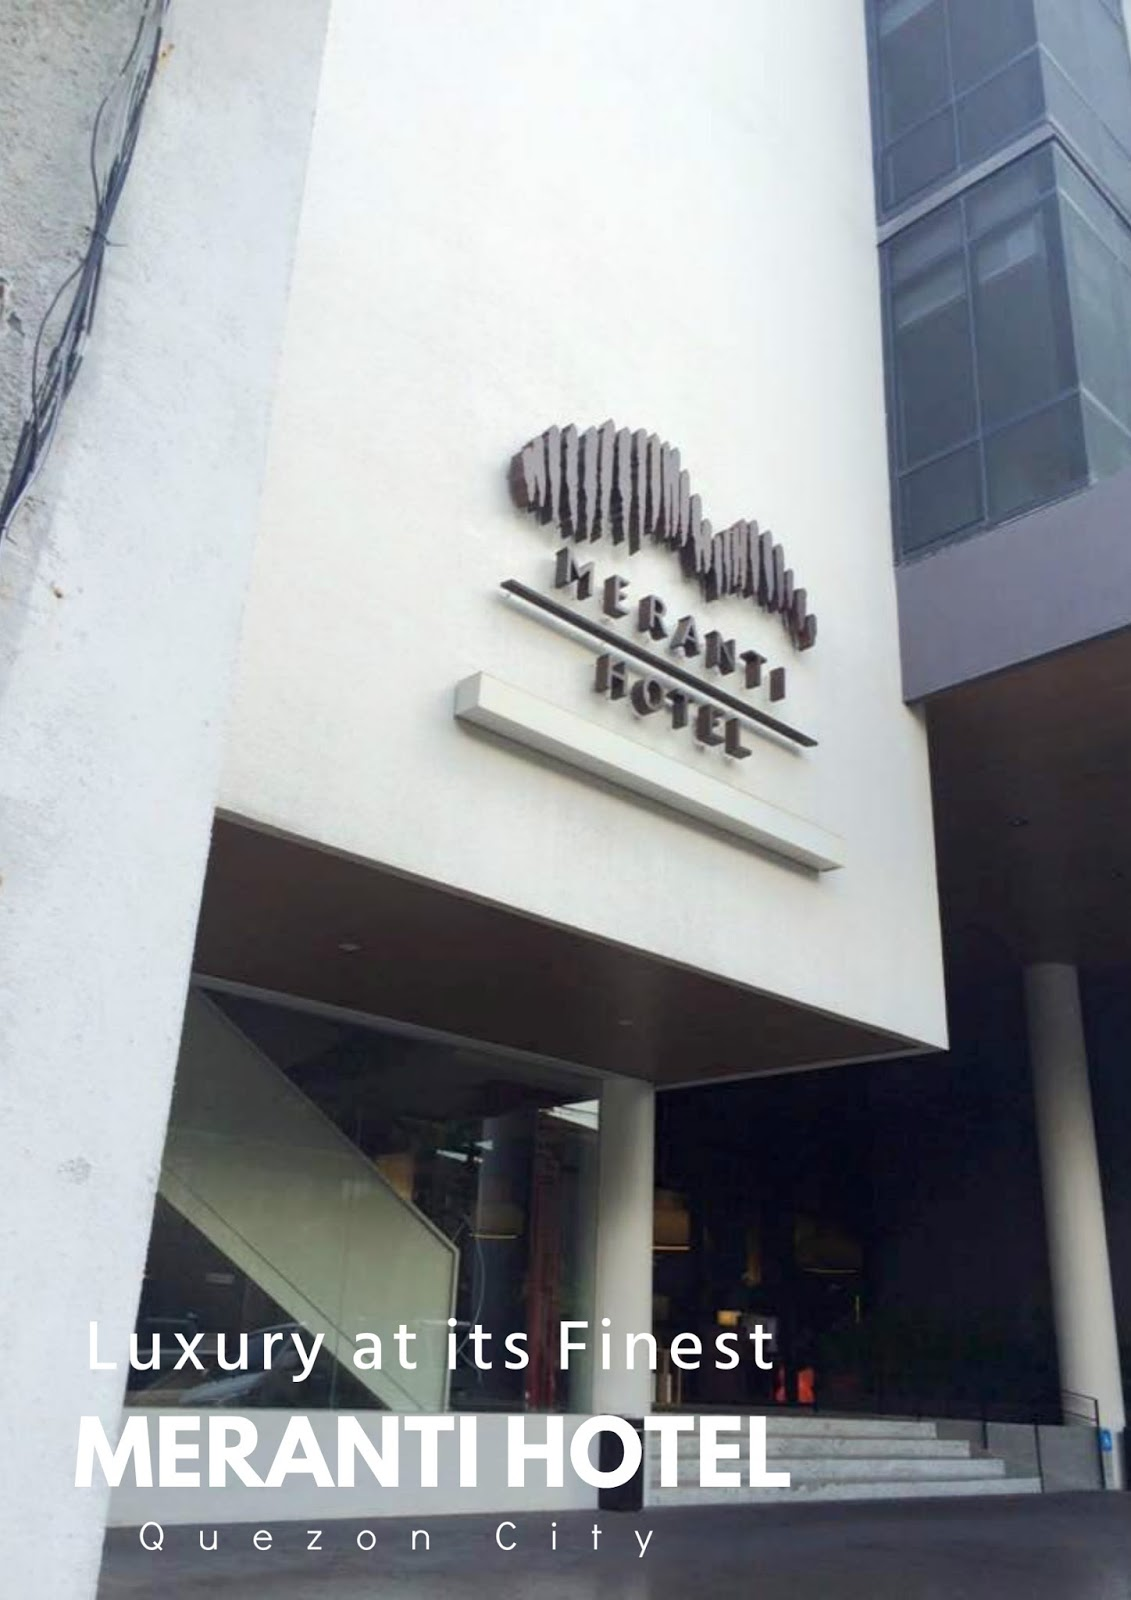 Meranti Hotel Stands Out Among 4 Star Luxury Hotels In Quezon City I Never Thought Would Experience Such Pure And Comfort The Heart Of